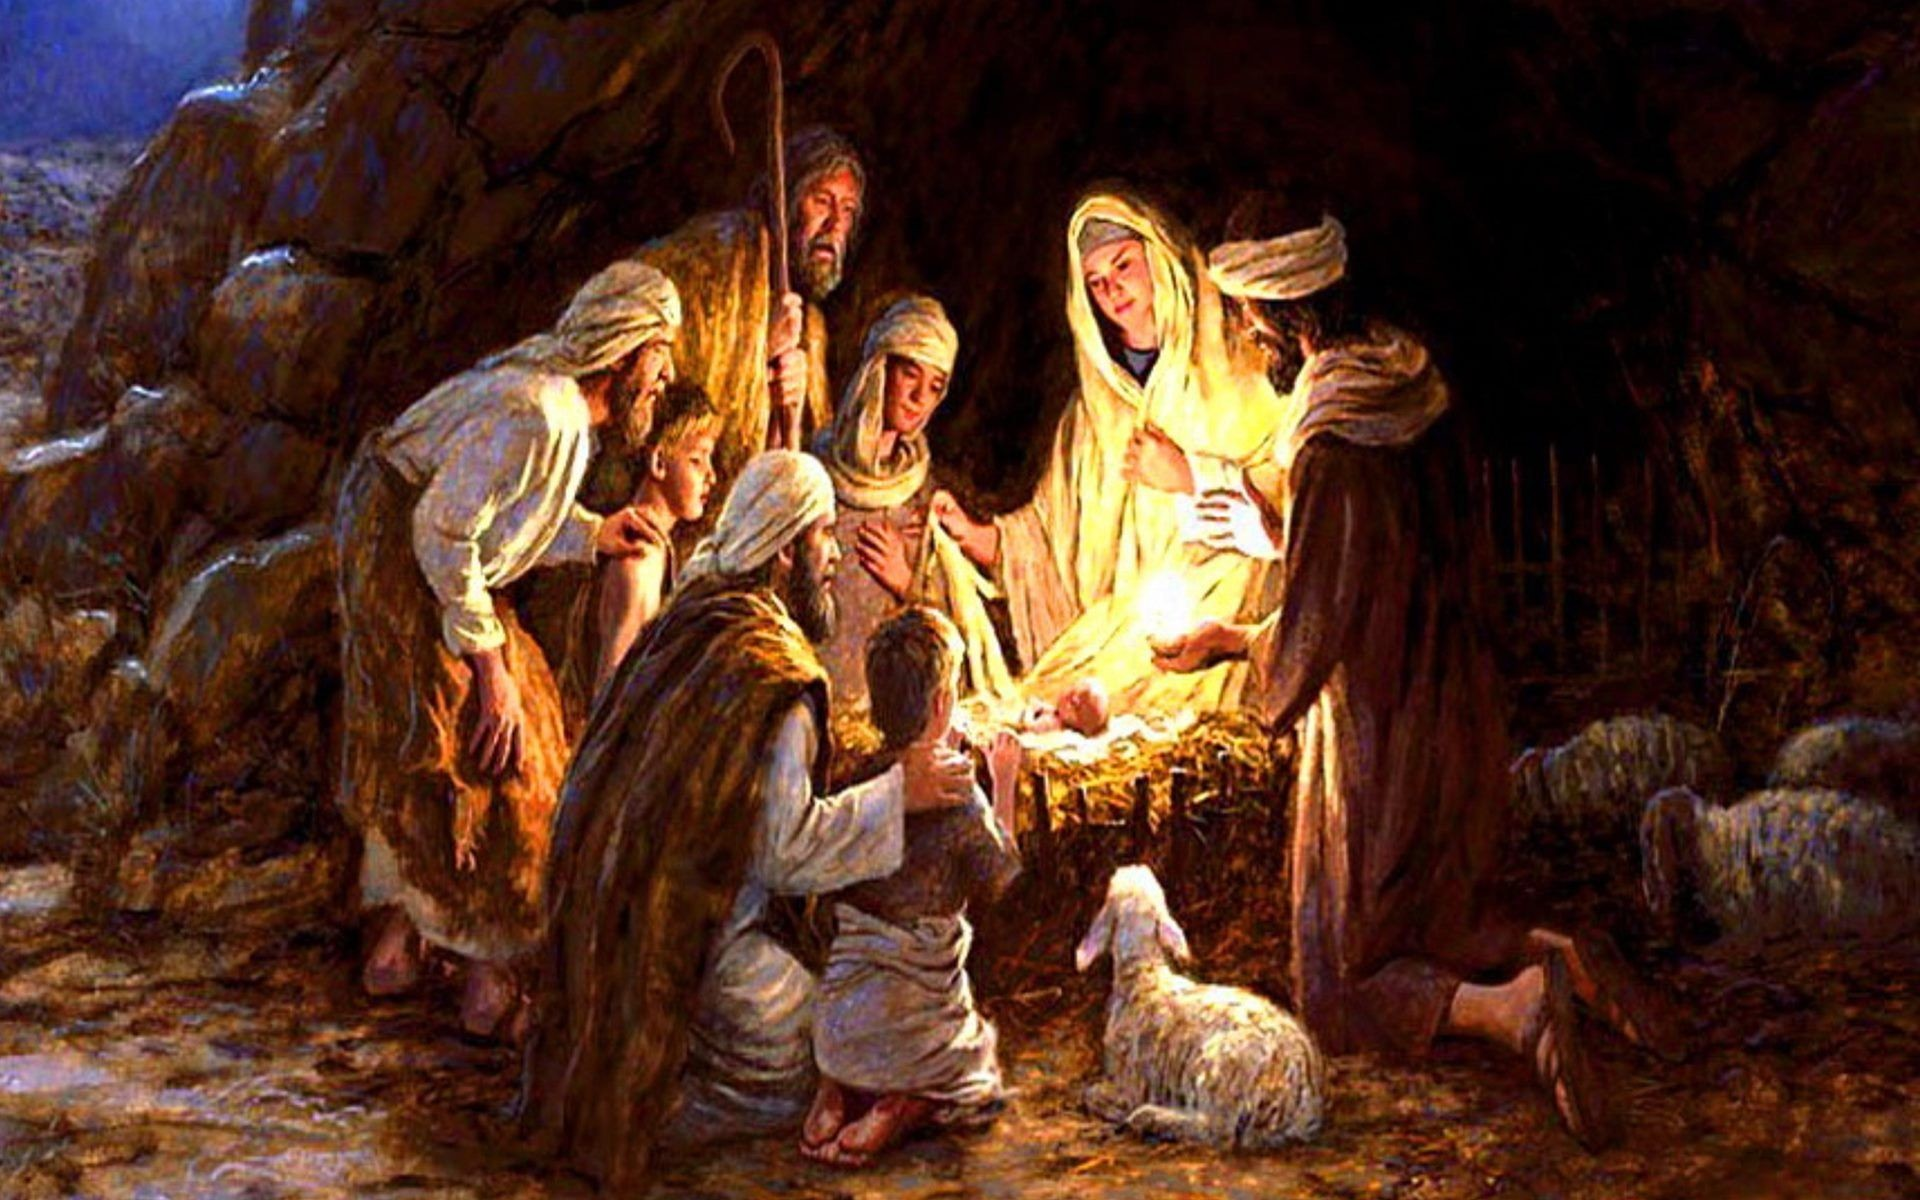 nativity scene wallpaper  44  images